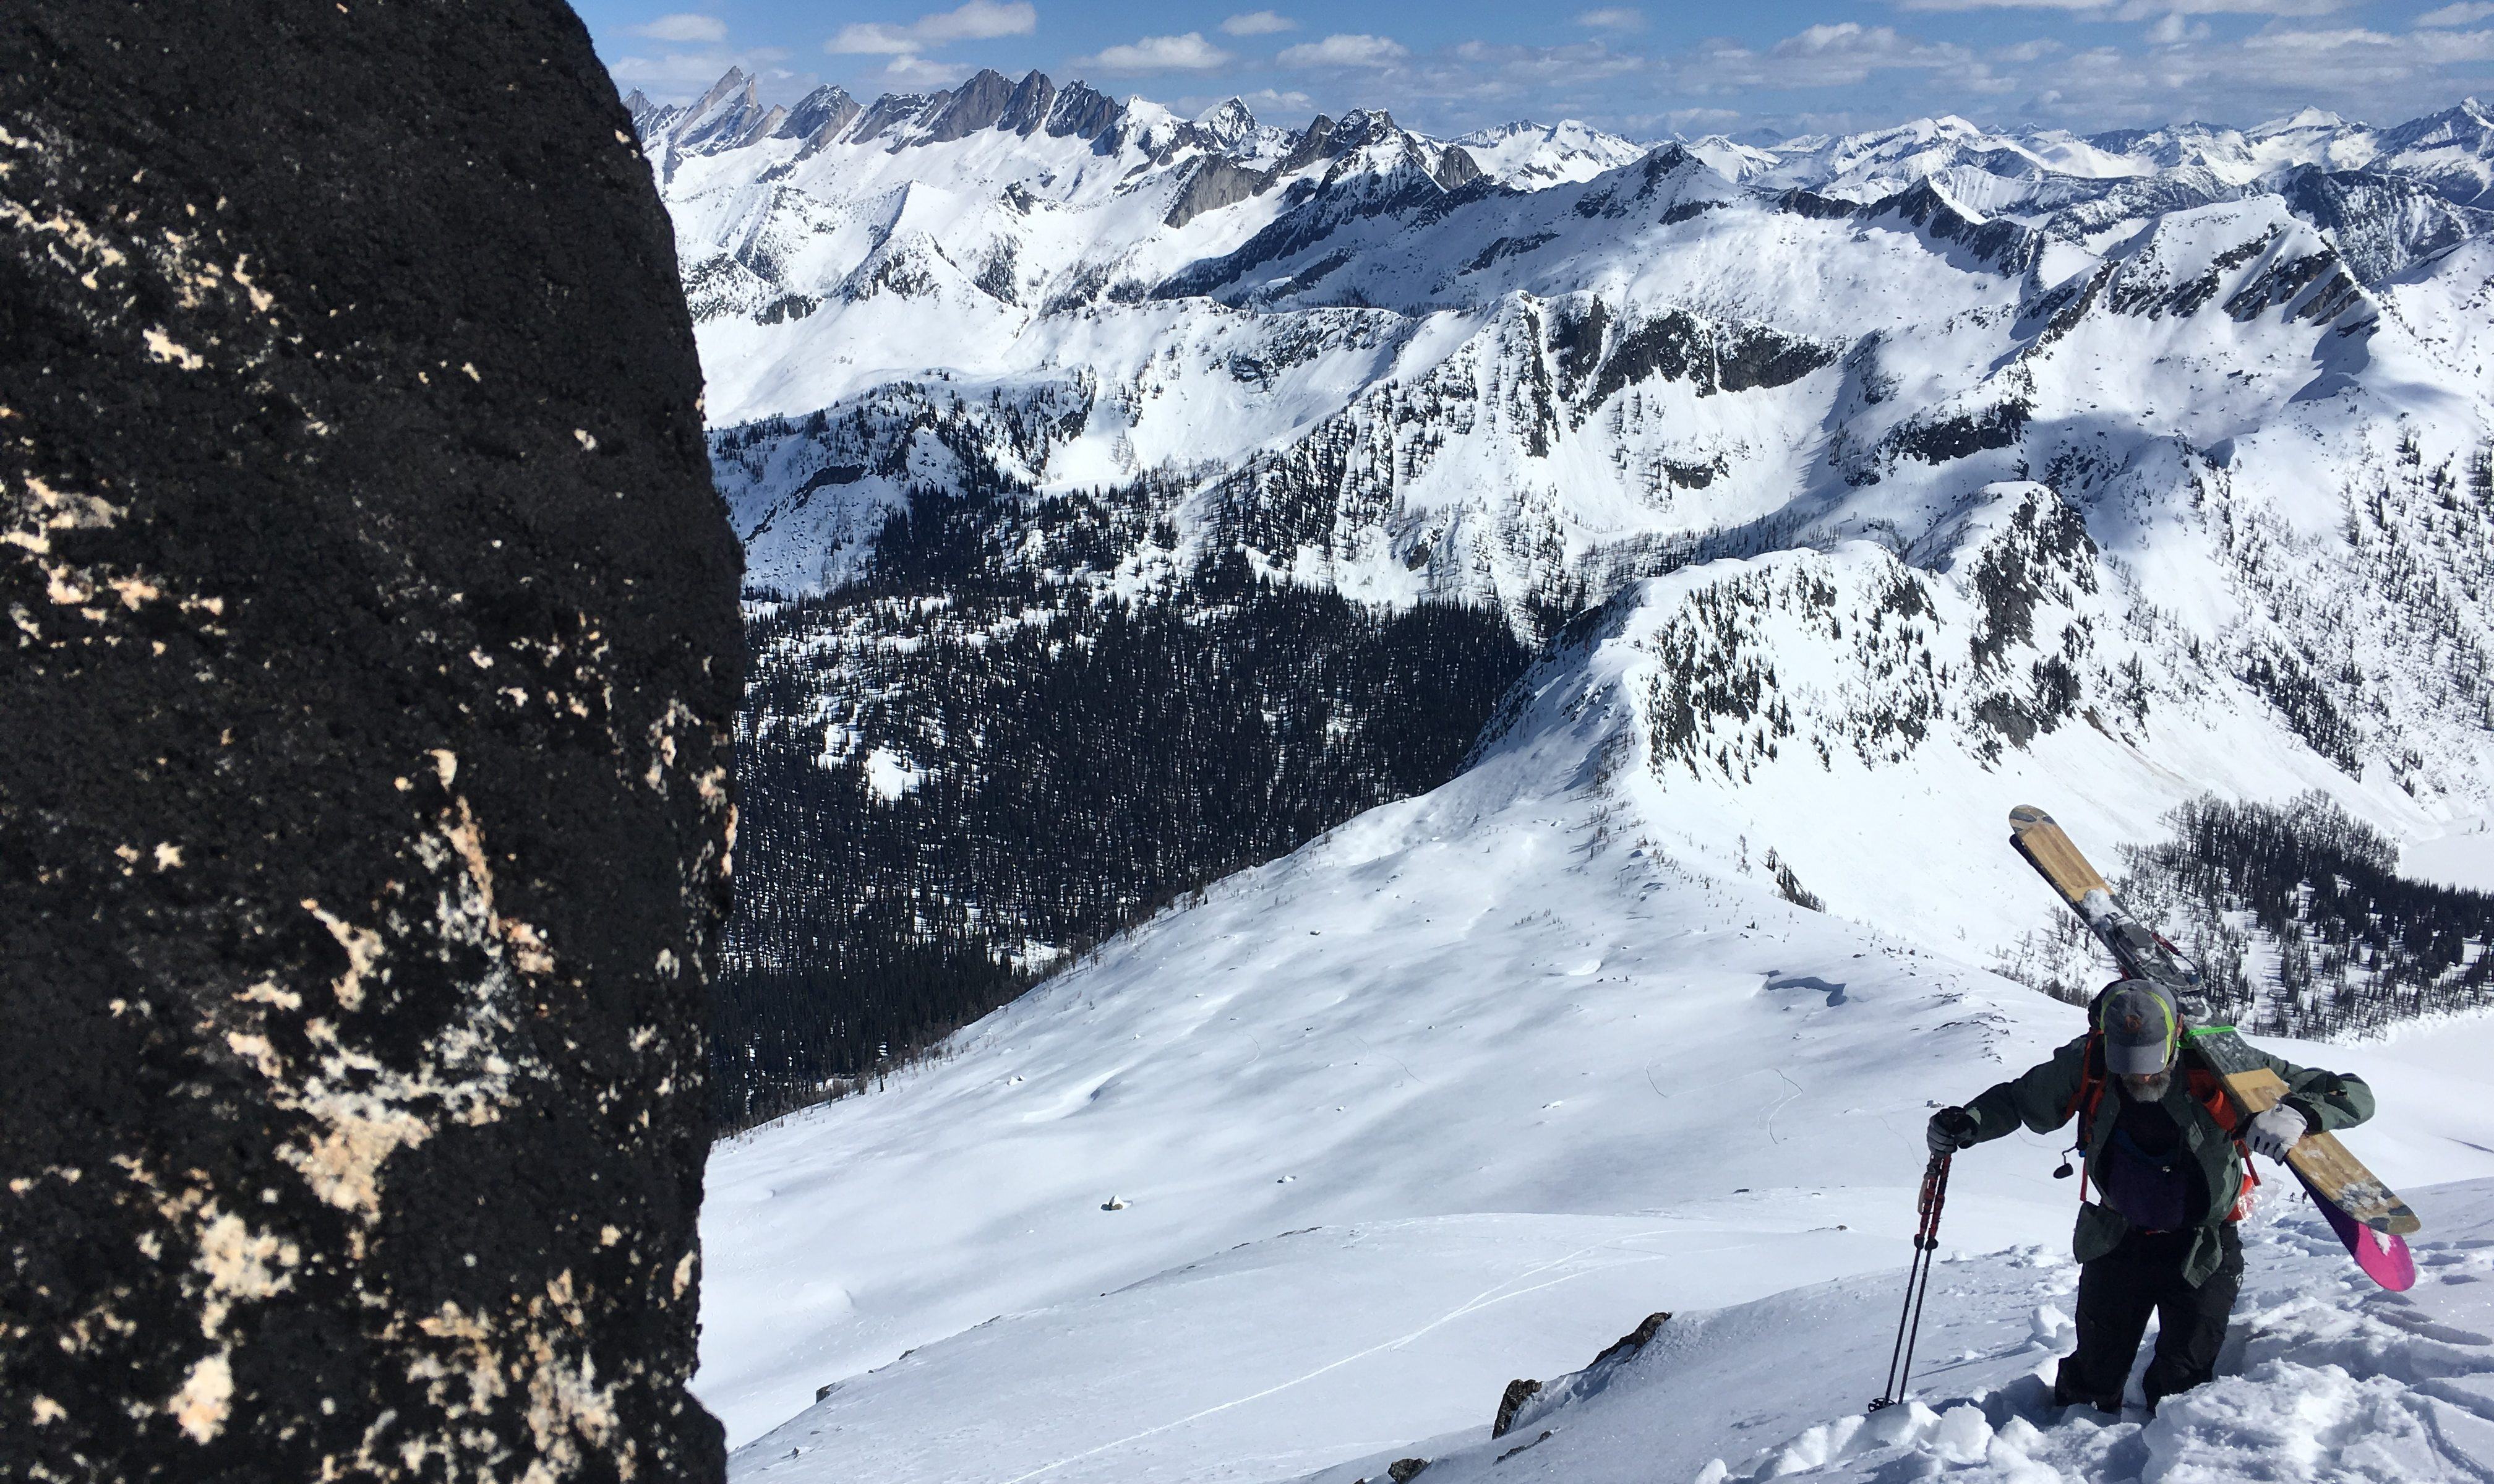 Spring Ski Mountaineering